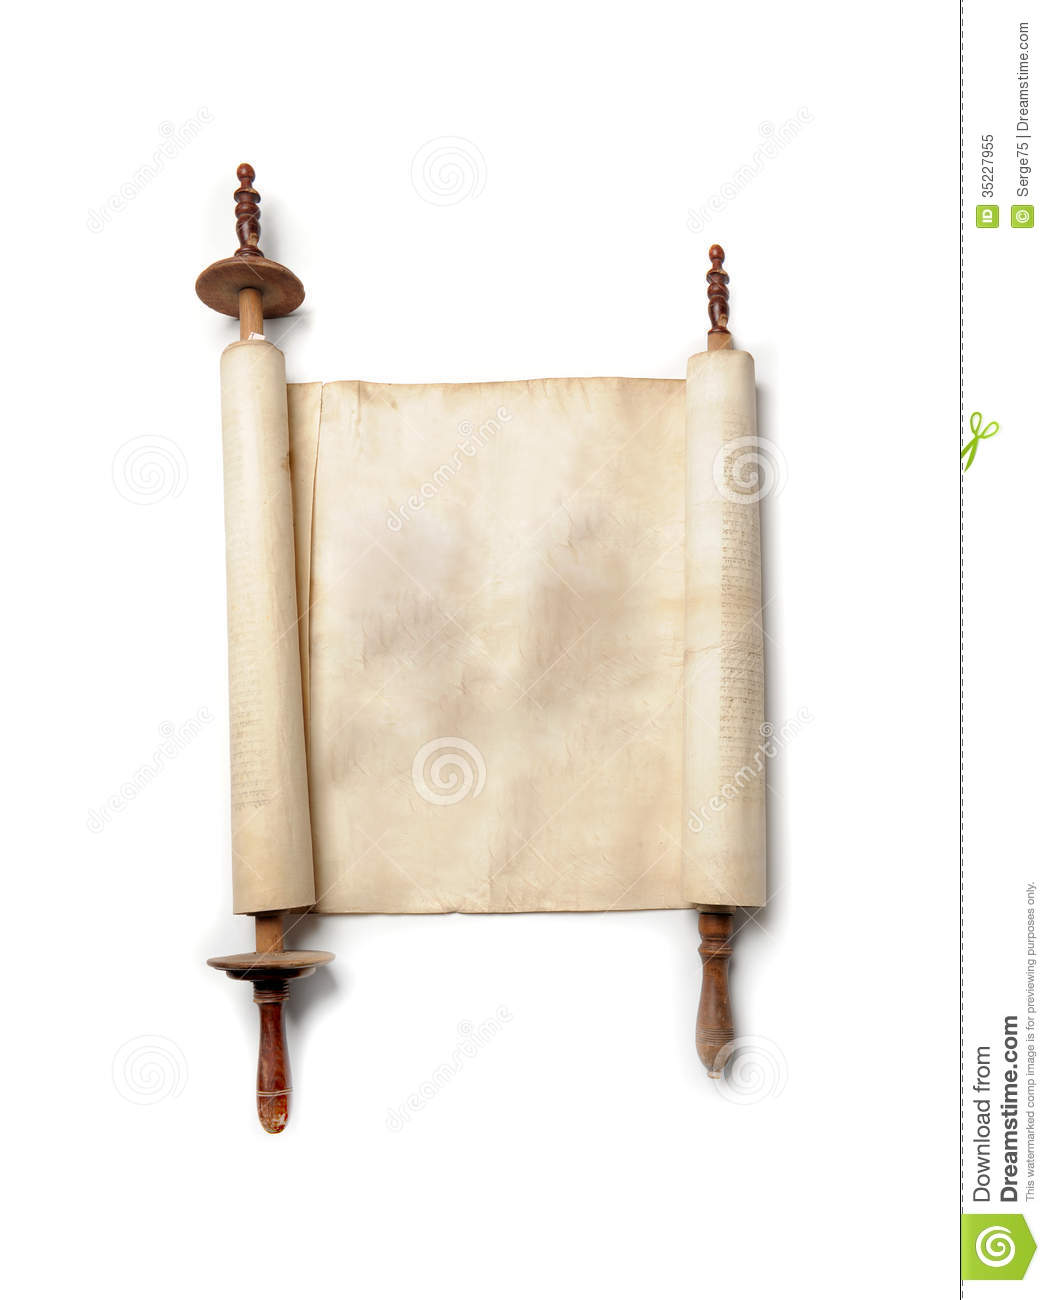 Antique Scrollimgs: Antique Scroll Royalty Free Stock Photo